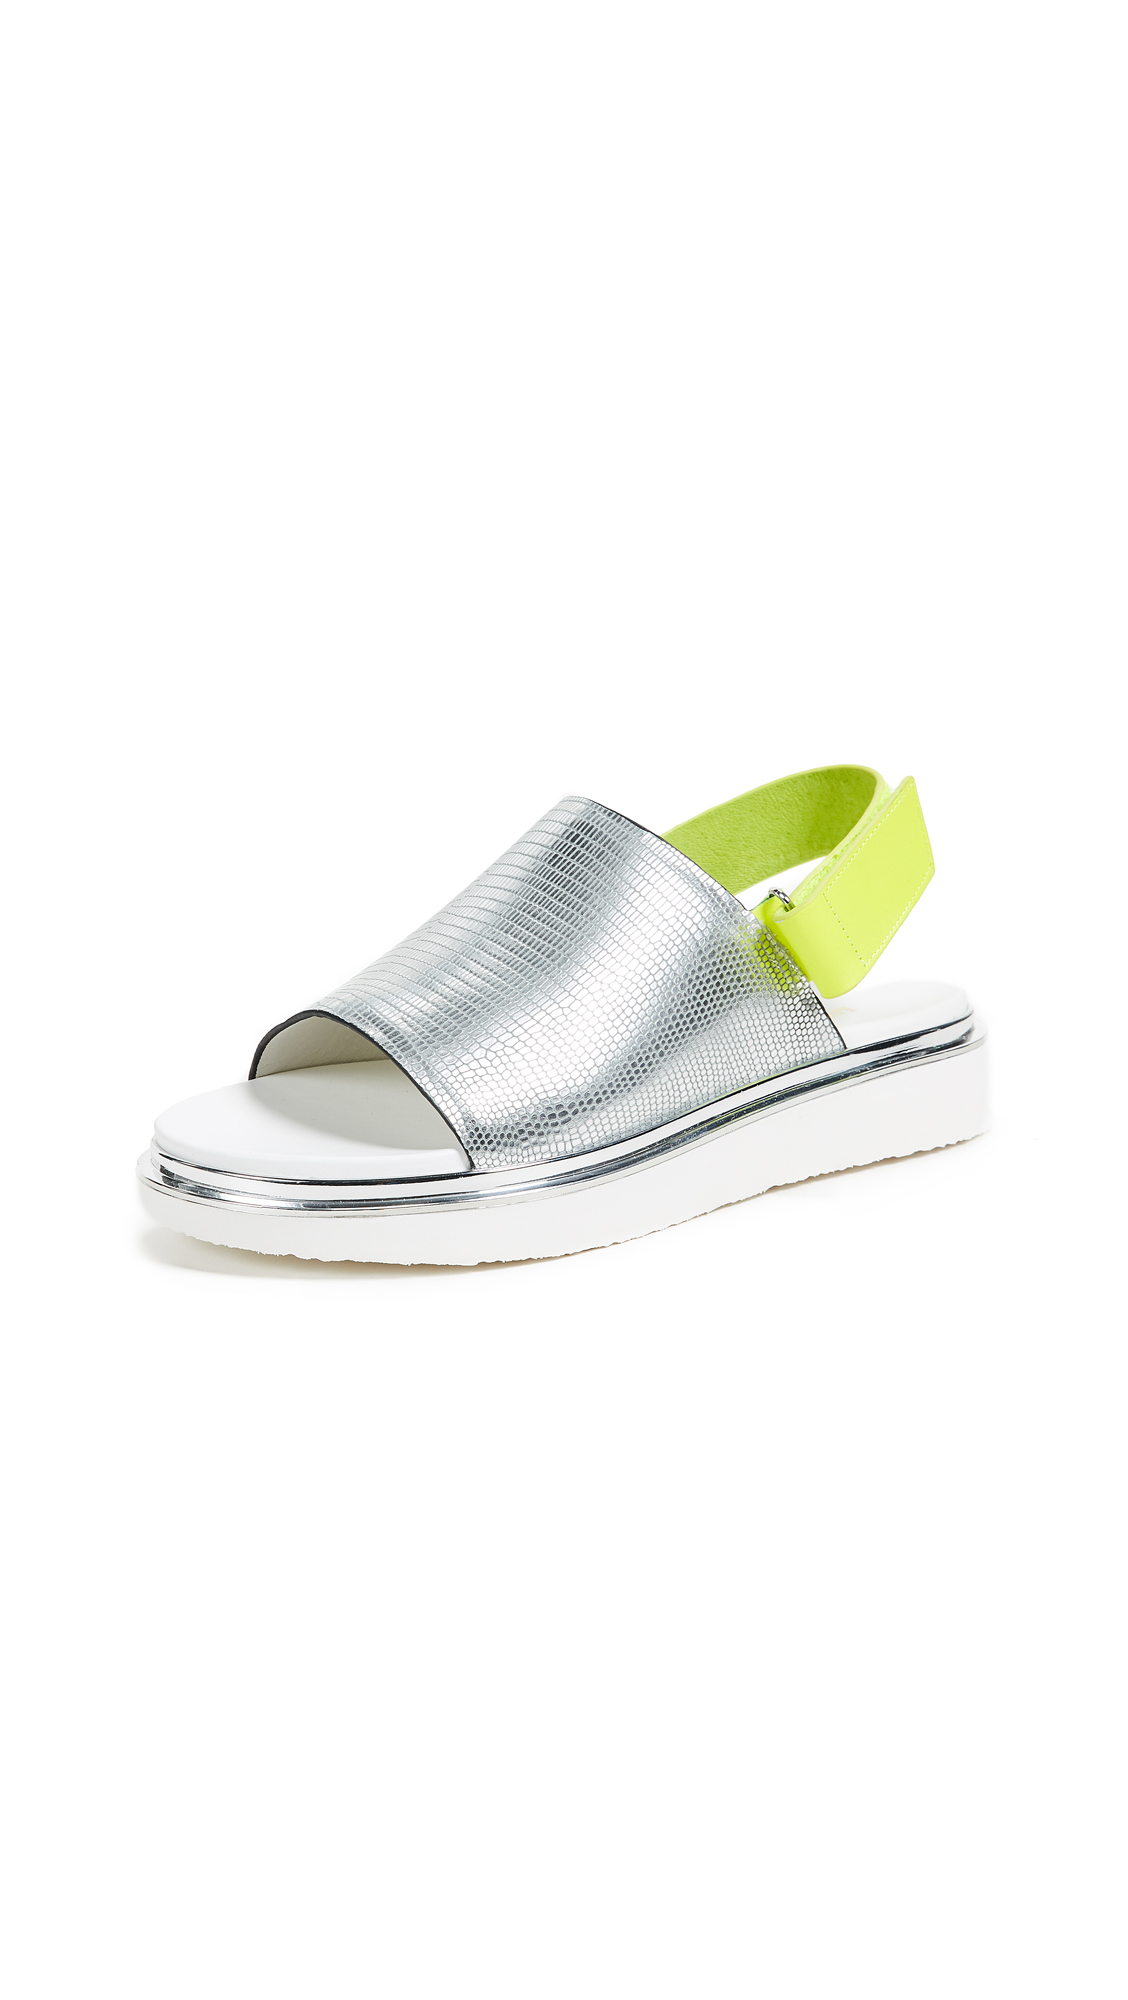 United Nude Terra Sandals - Silver/Neon Lime